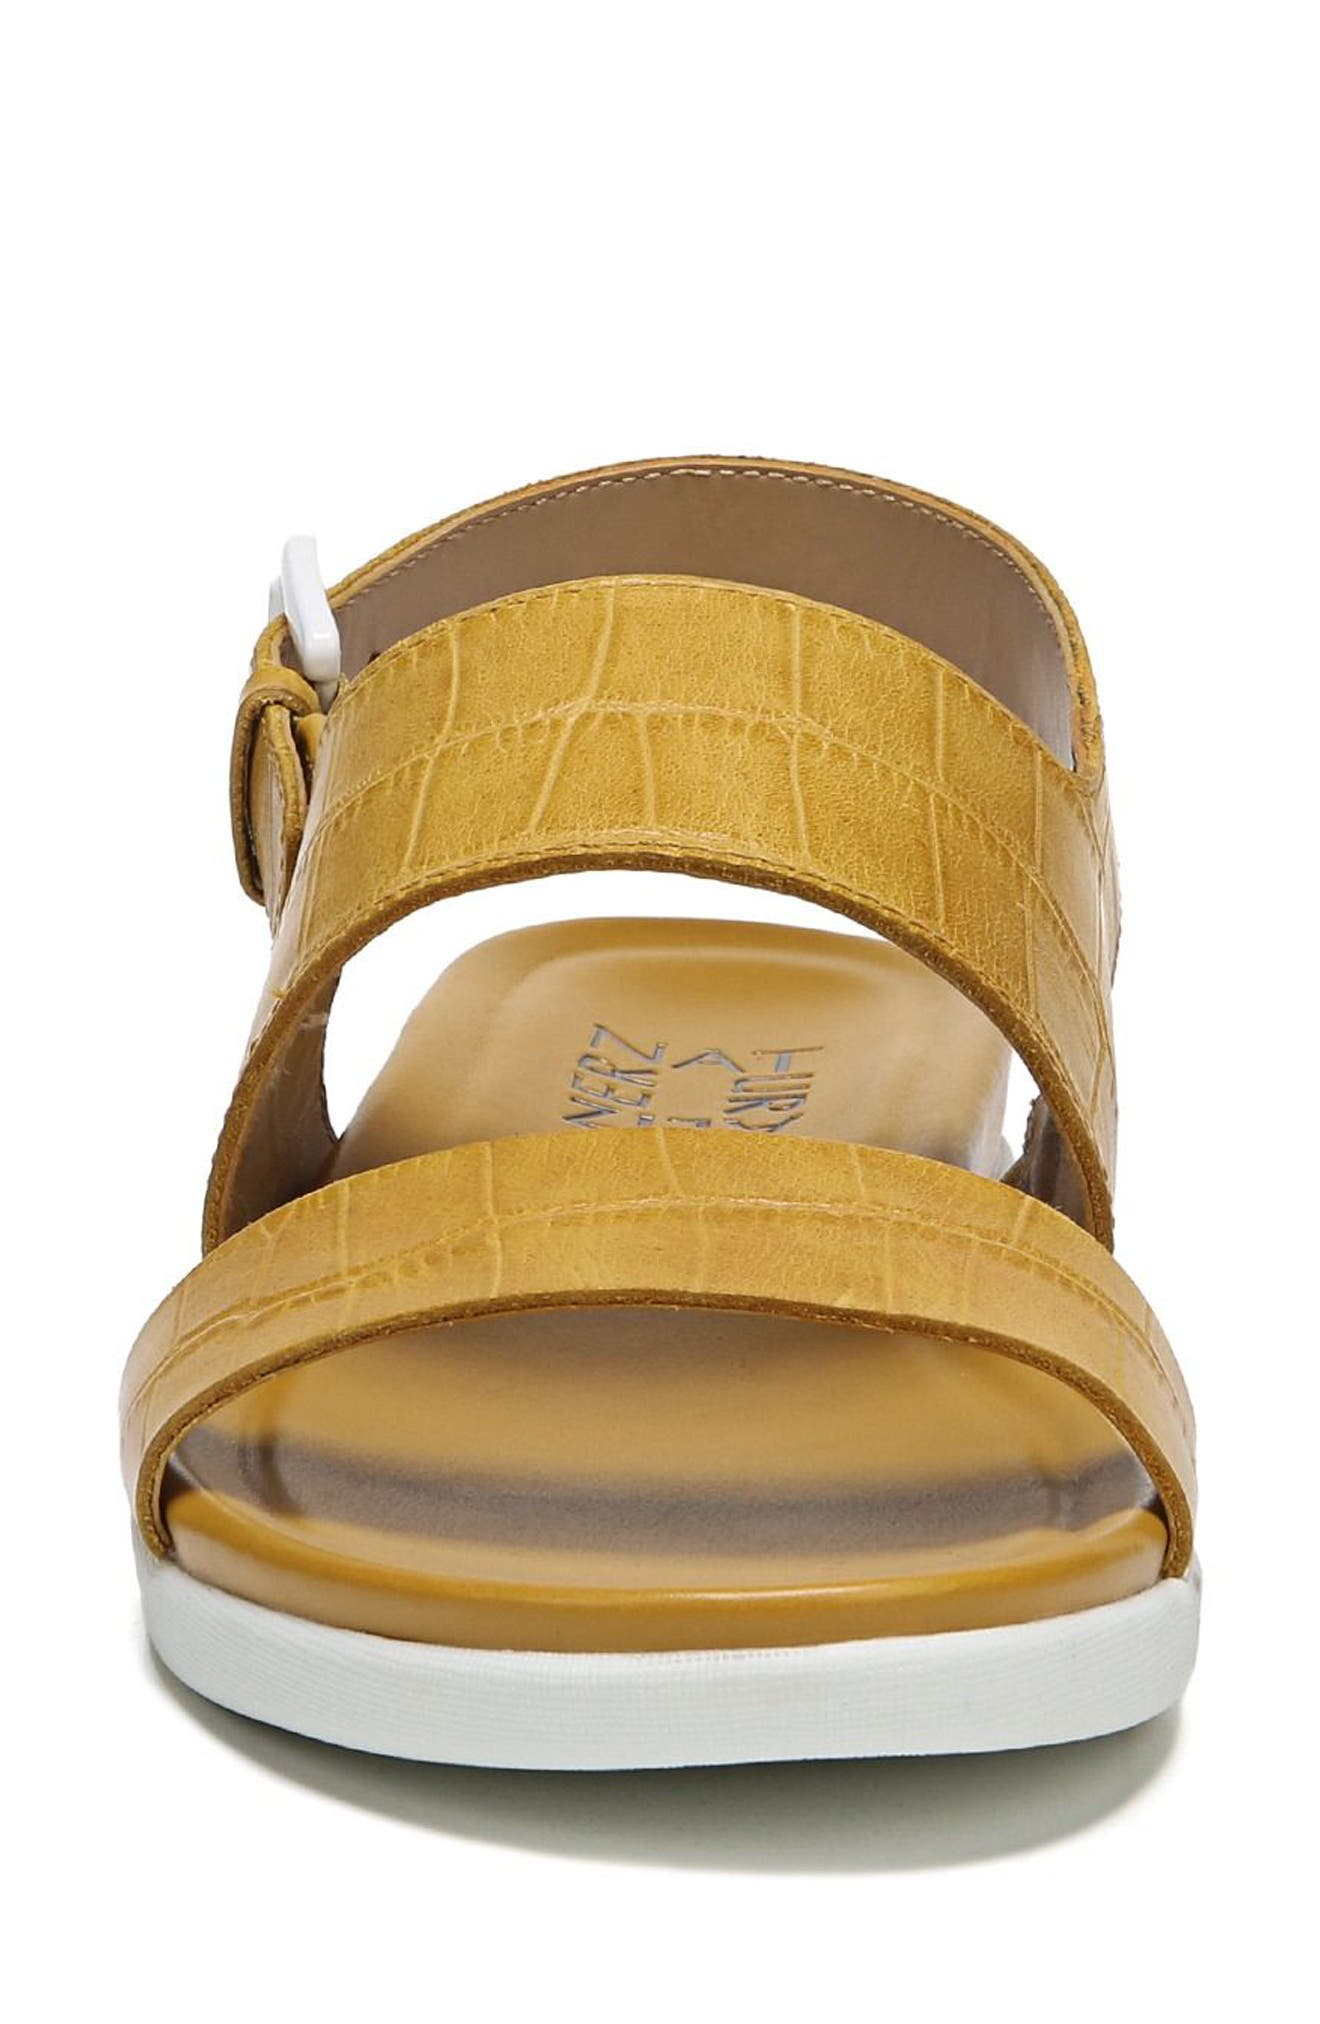 Emory Wedge Sandal,                             Alternate thumbnail 4, color,                             Yellow Printed Leather